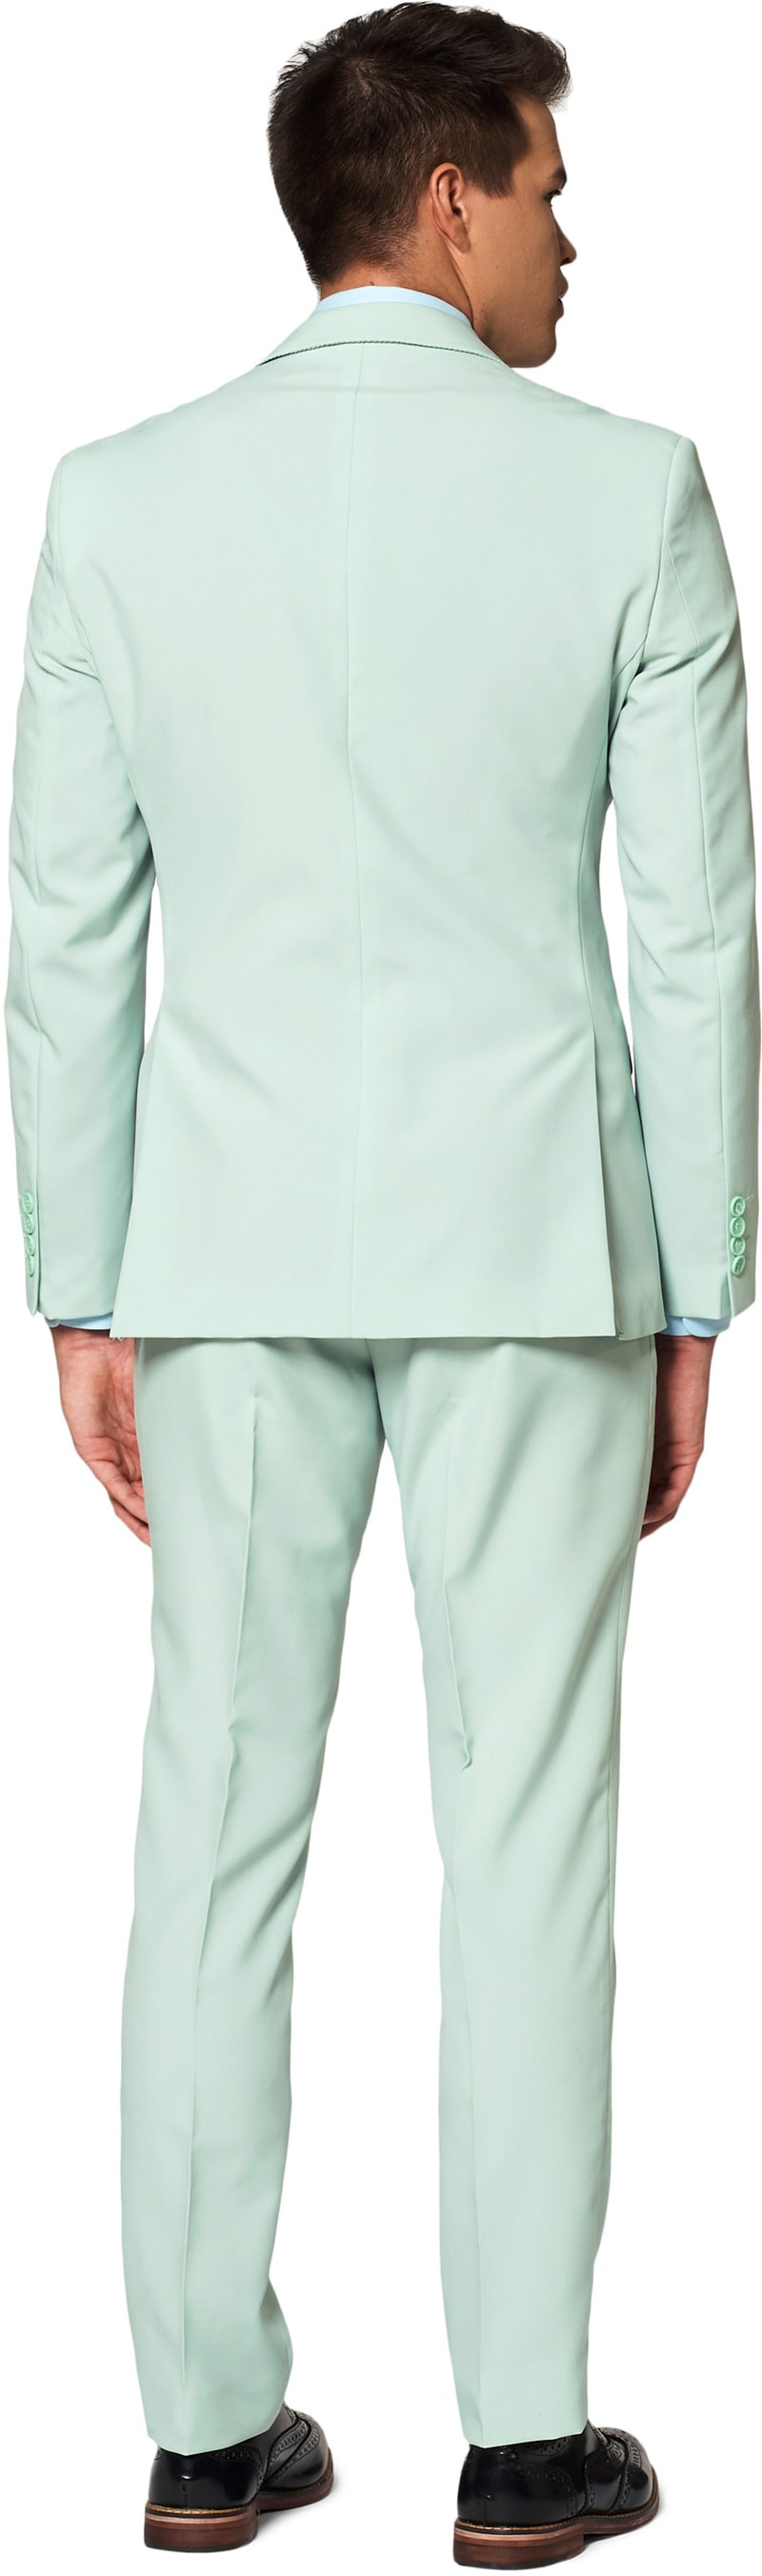 OppoSuits Magic Mint Suit photo 1